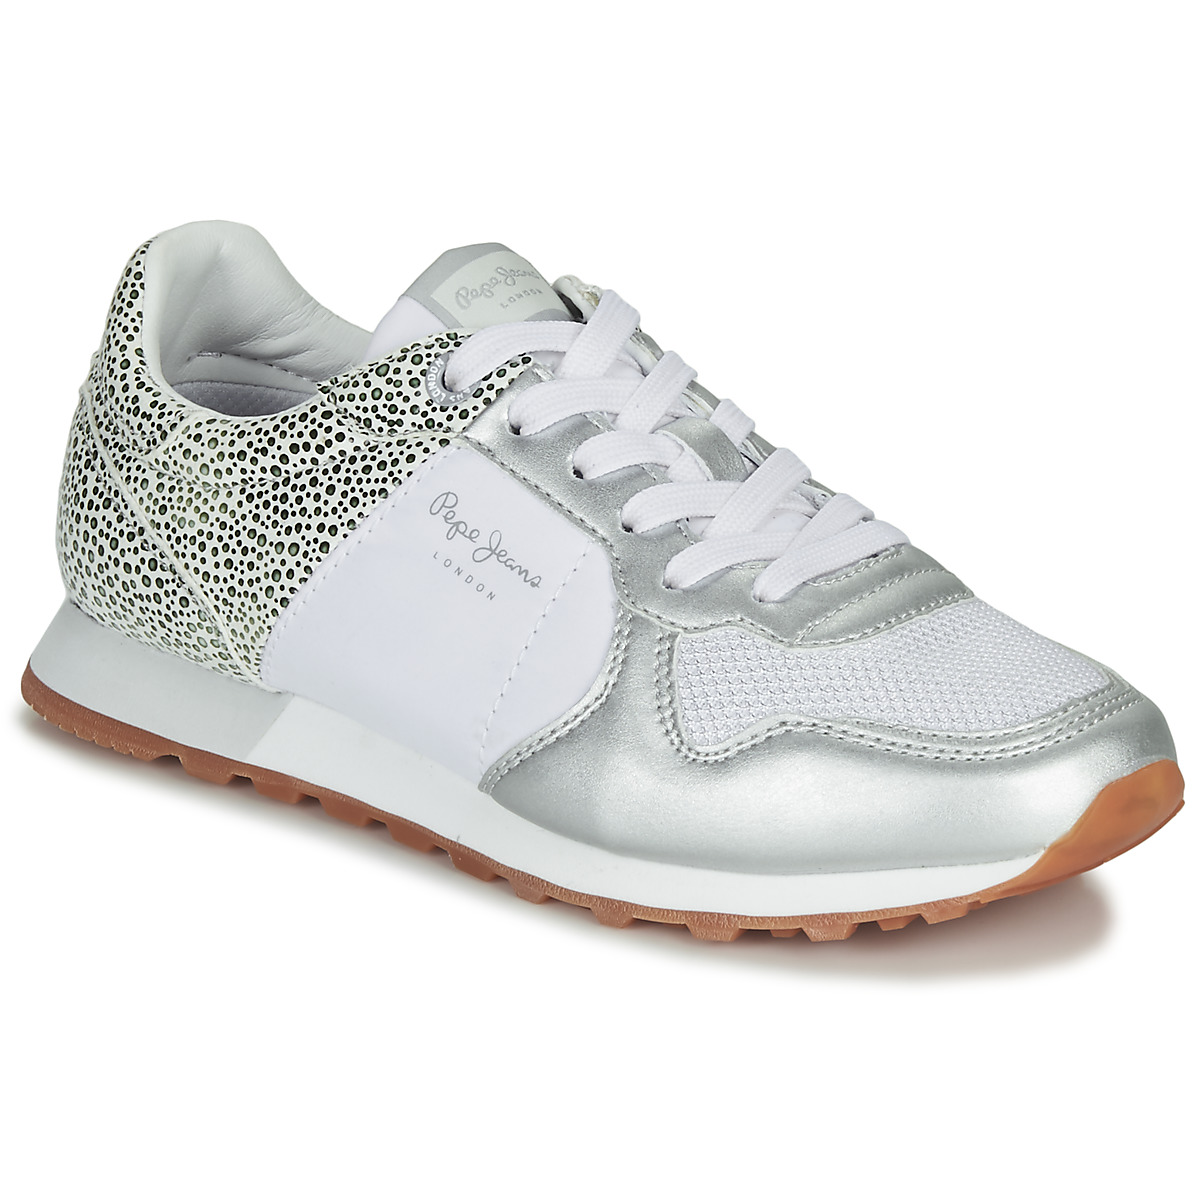 Pepe jeans VERONA White - Fast delivery